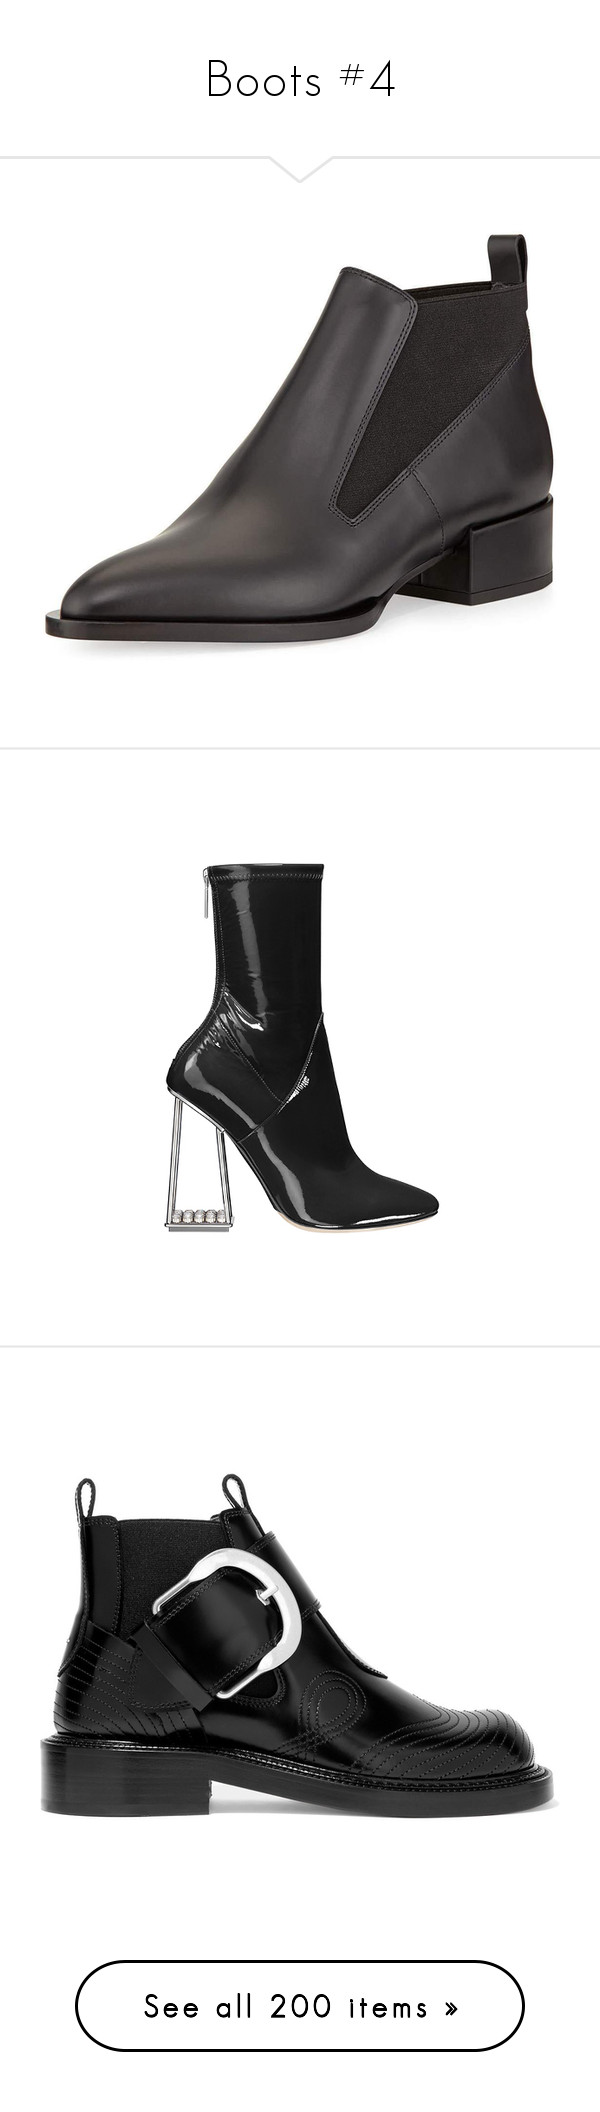 """""""Boots #4"""" by marissa-91 ❤ liked on Polyvore featuring shoes, boots, ankle booties, black, black chelsea boots, black booties, black boots, pointed toe booties, pointy toe booties and dior"""